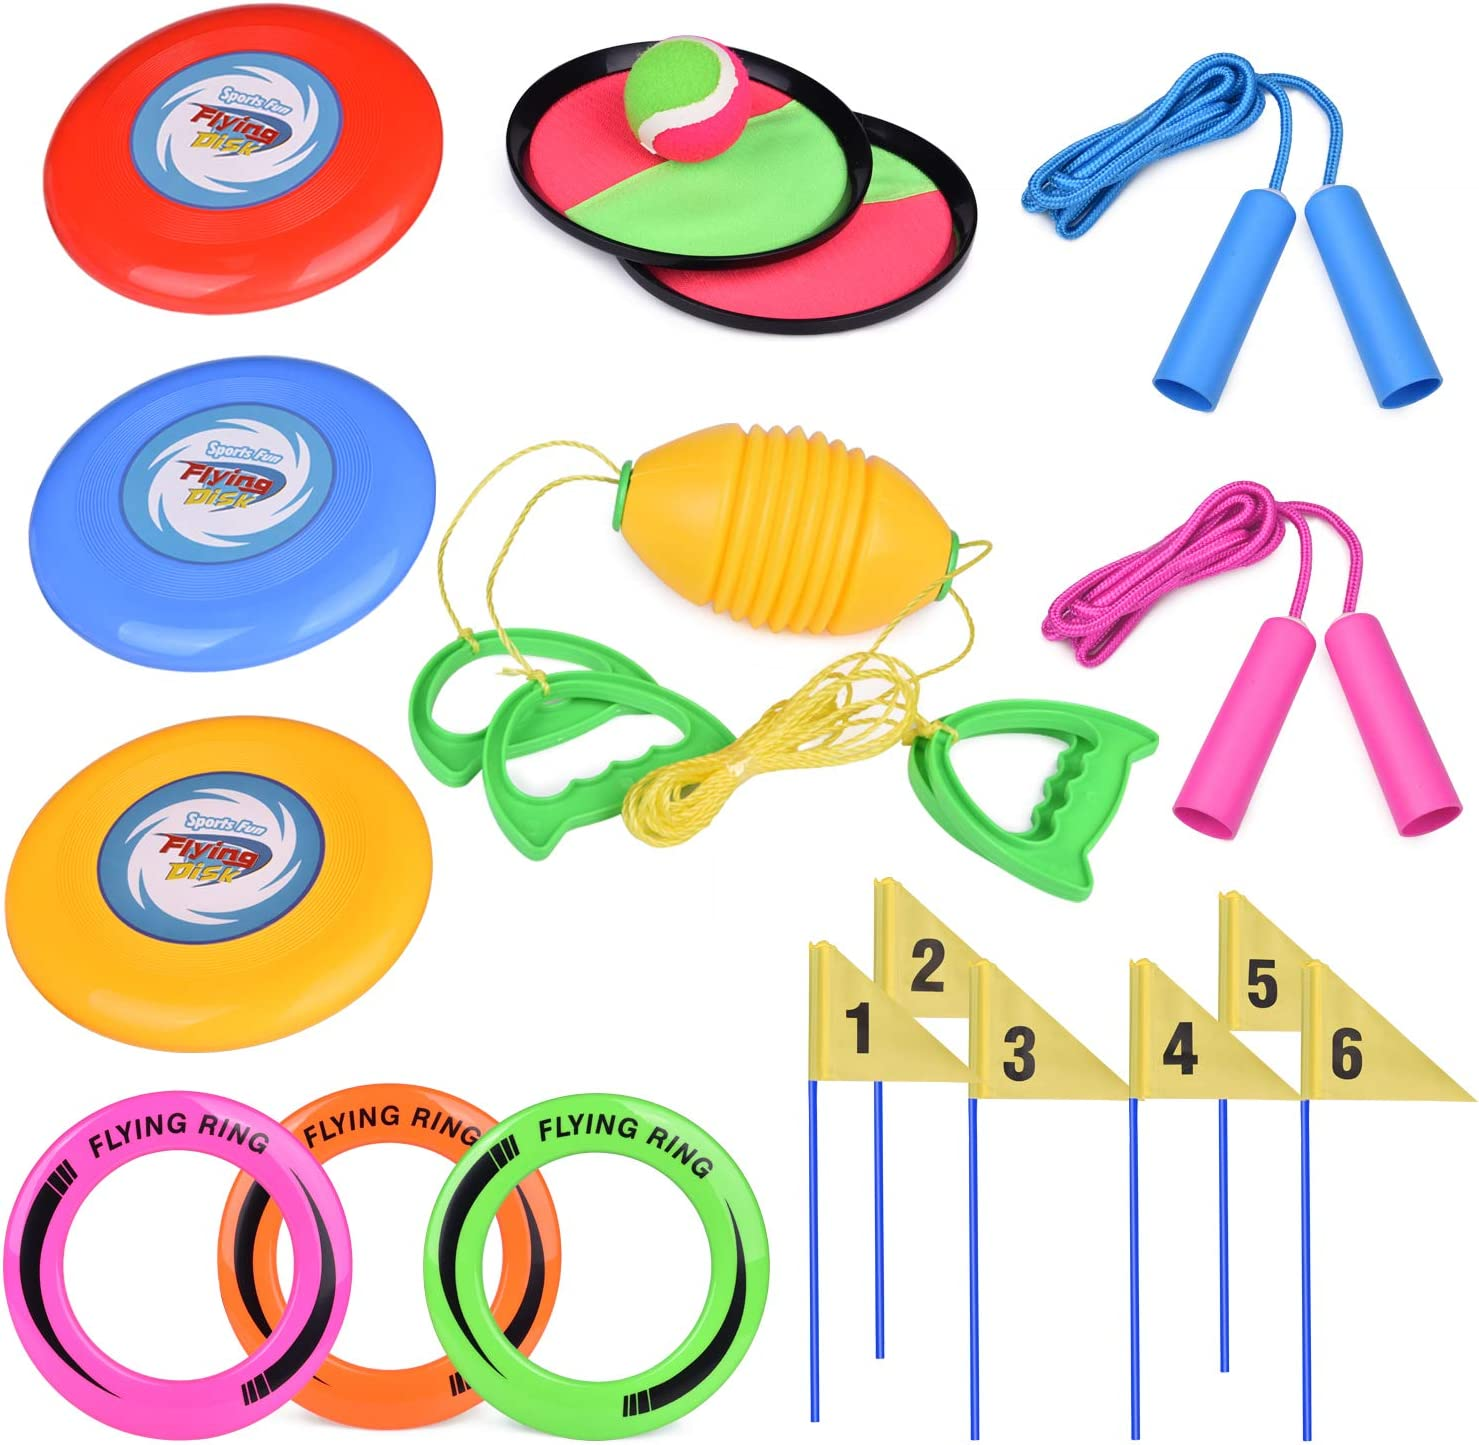 Amazon Com Fun Little Toys 5 Outdoor Games Set Kids Outdoor Toys With 6 Flying Discs Zip Ball Toss And Catch Game Ring Toss Game And 2 Jump Ropes Toys Games